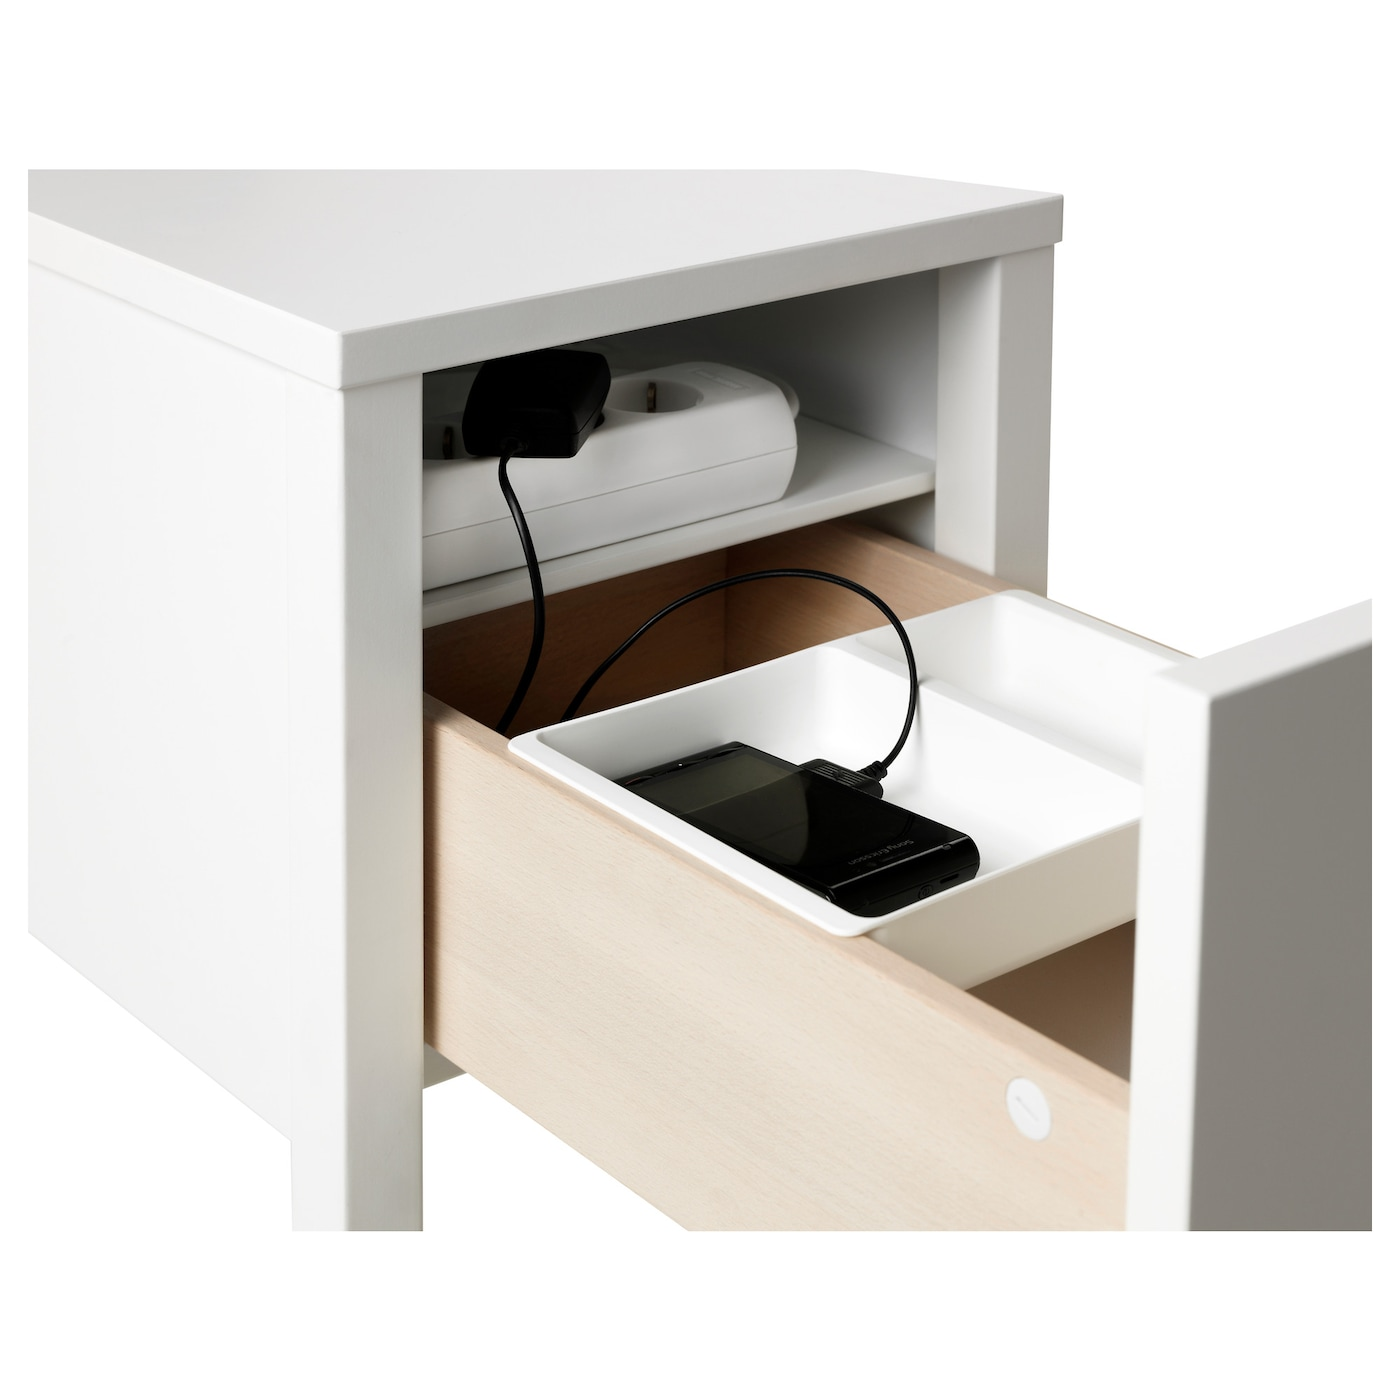 IKEA NORDLI Bedside Table On The Hidden Shelf Is Room For An Extension  Socket For Your